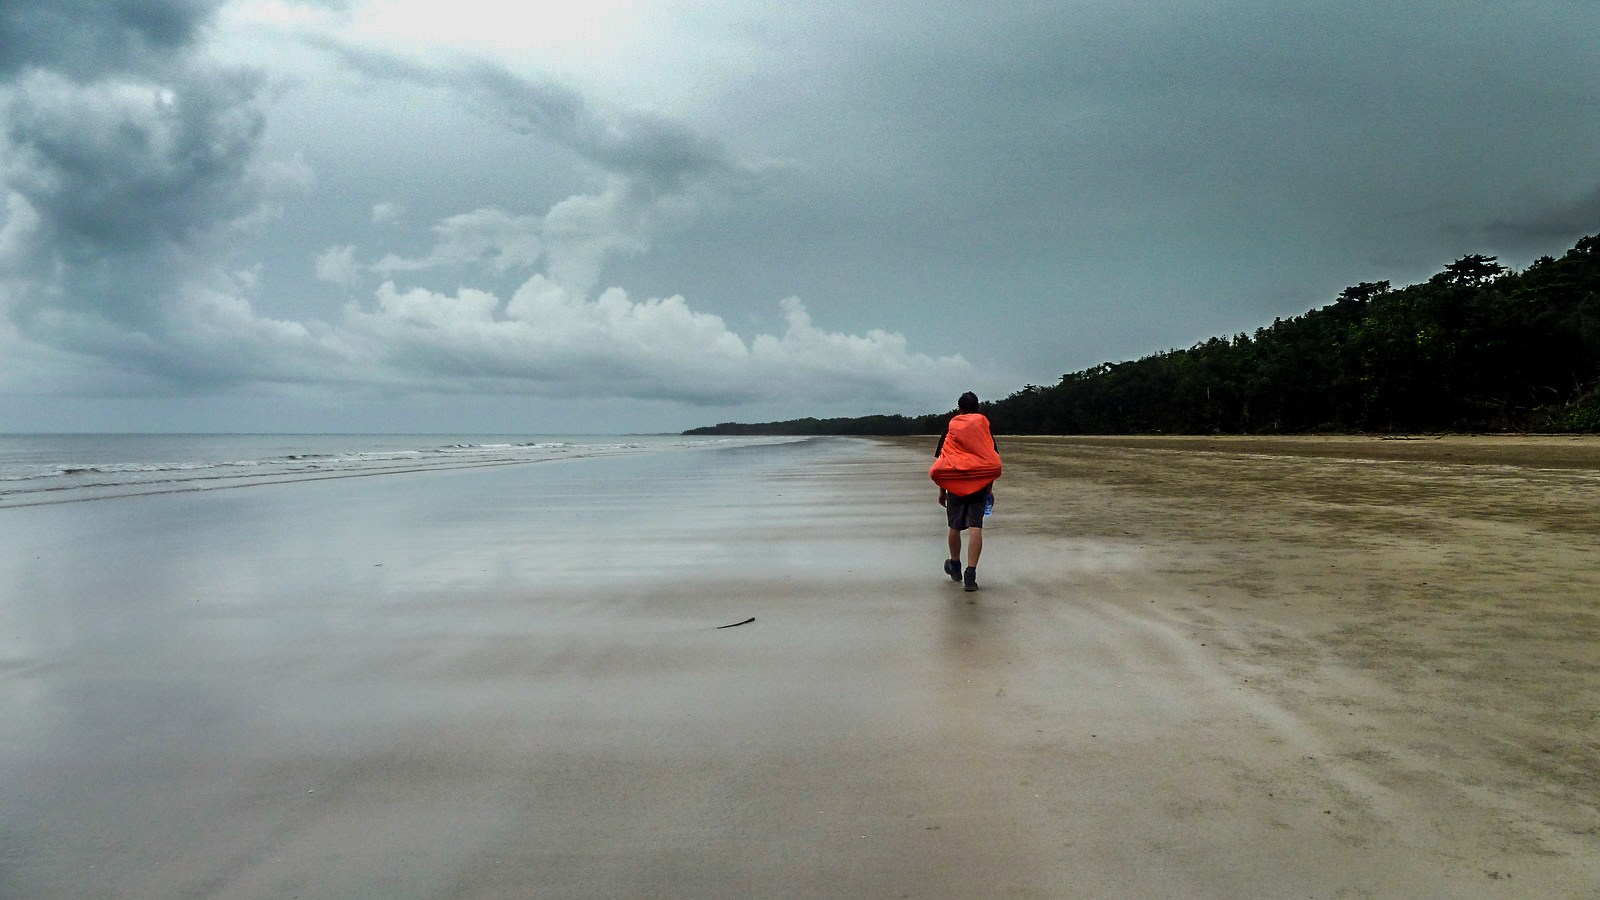 a photo of a hiker on a beach on hinchinbrook island with clouds in the background.